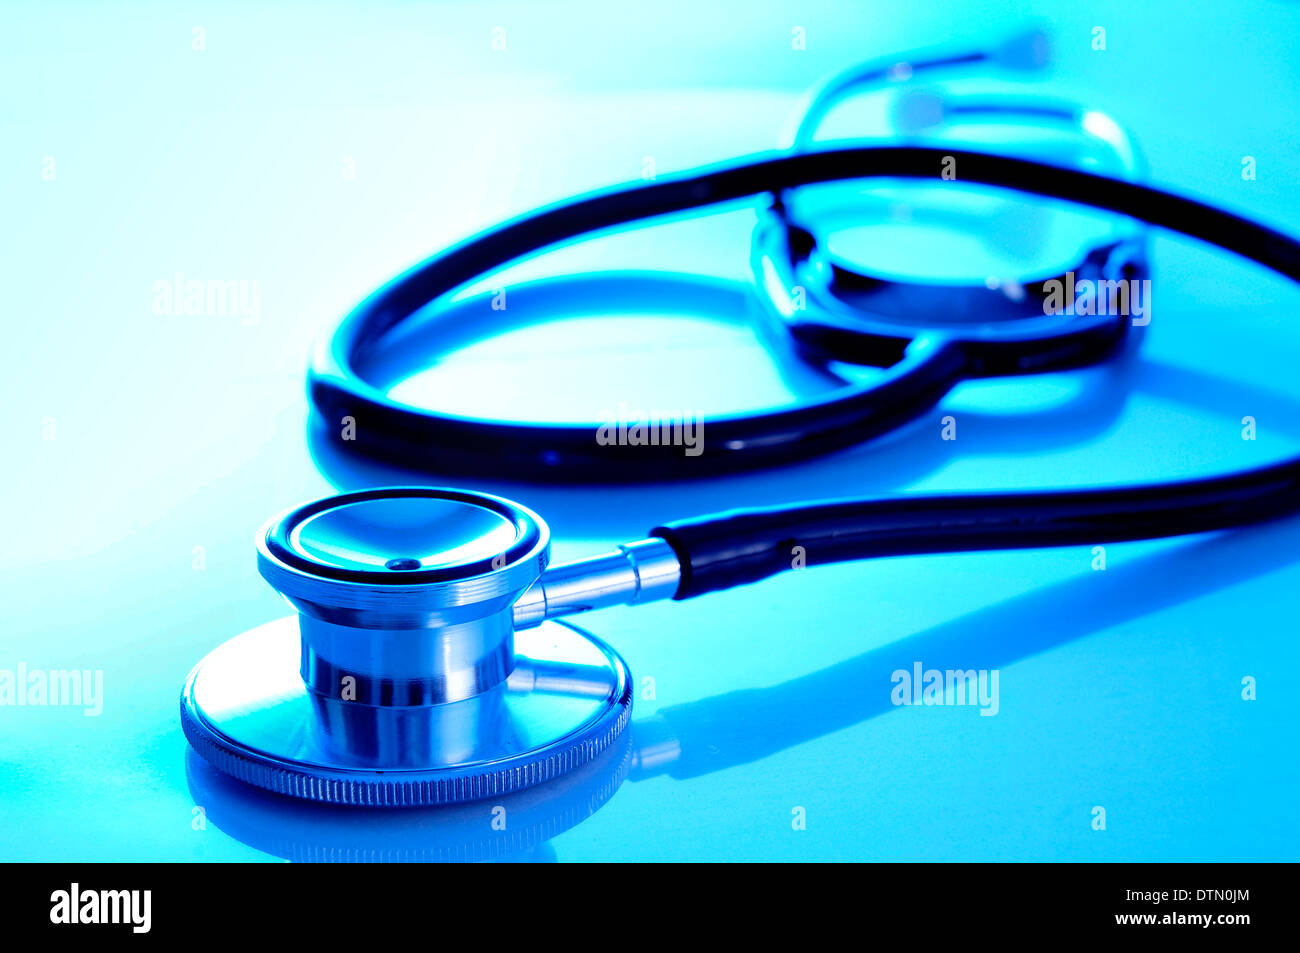 closeup of a medical stethoscope - Stock Image